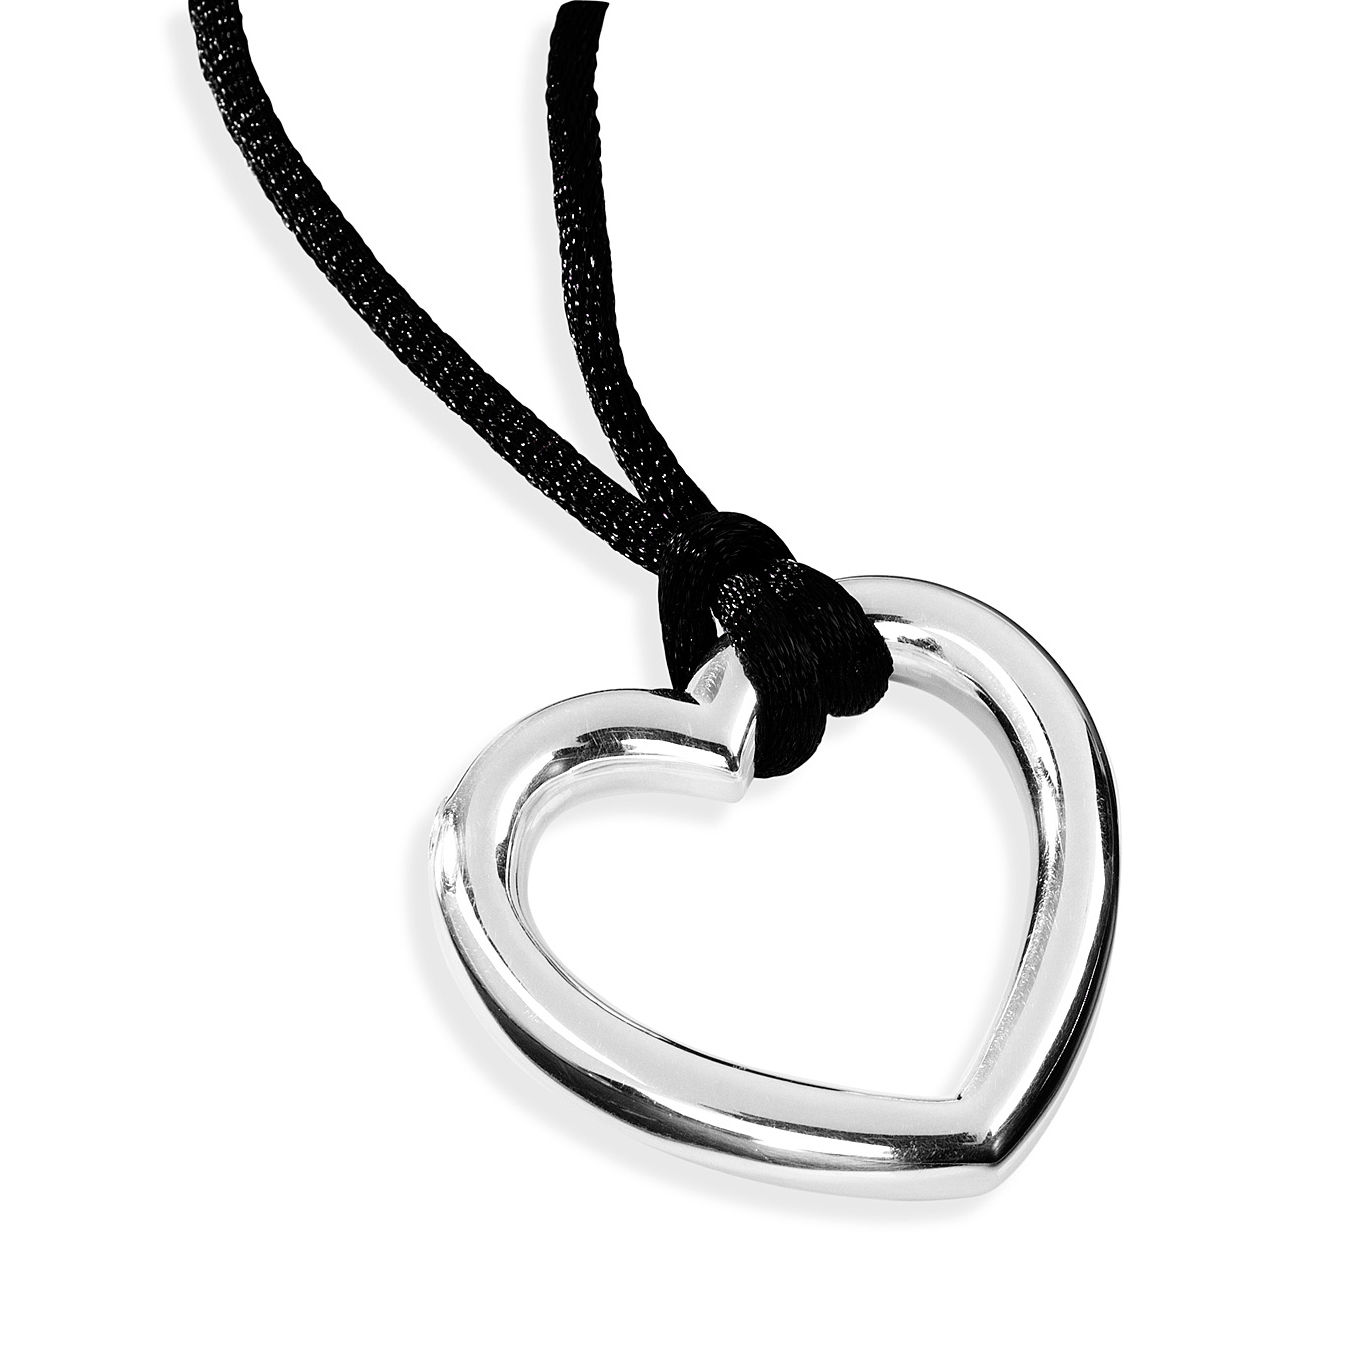 Open Heart Cremation Pendant Sterling Silver Keepsake Necklace - Treasured Memories | Keepsake Jewelry